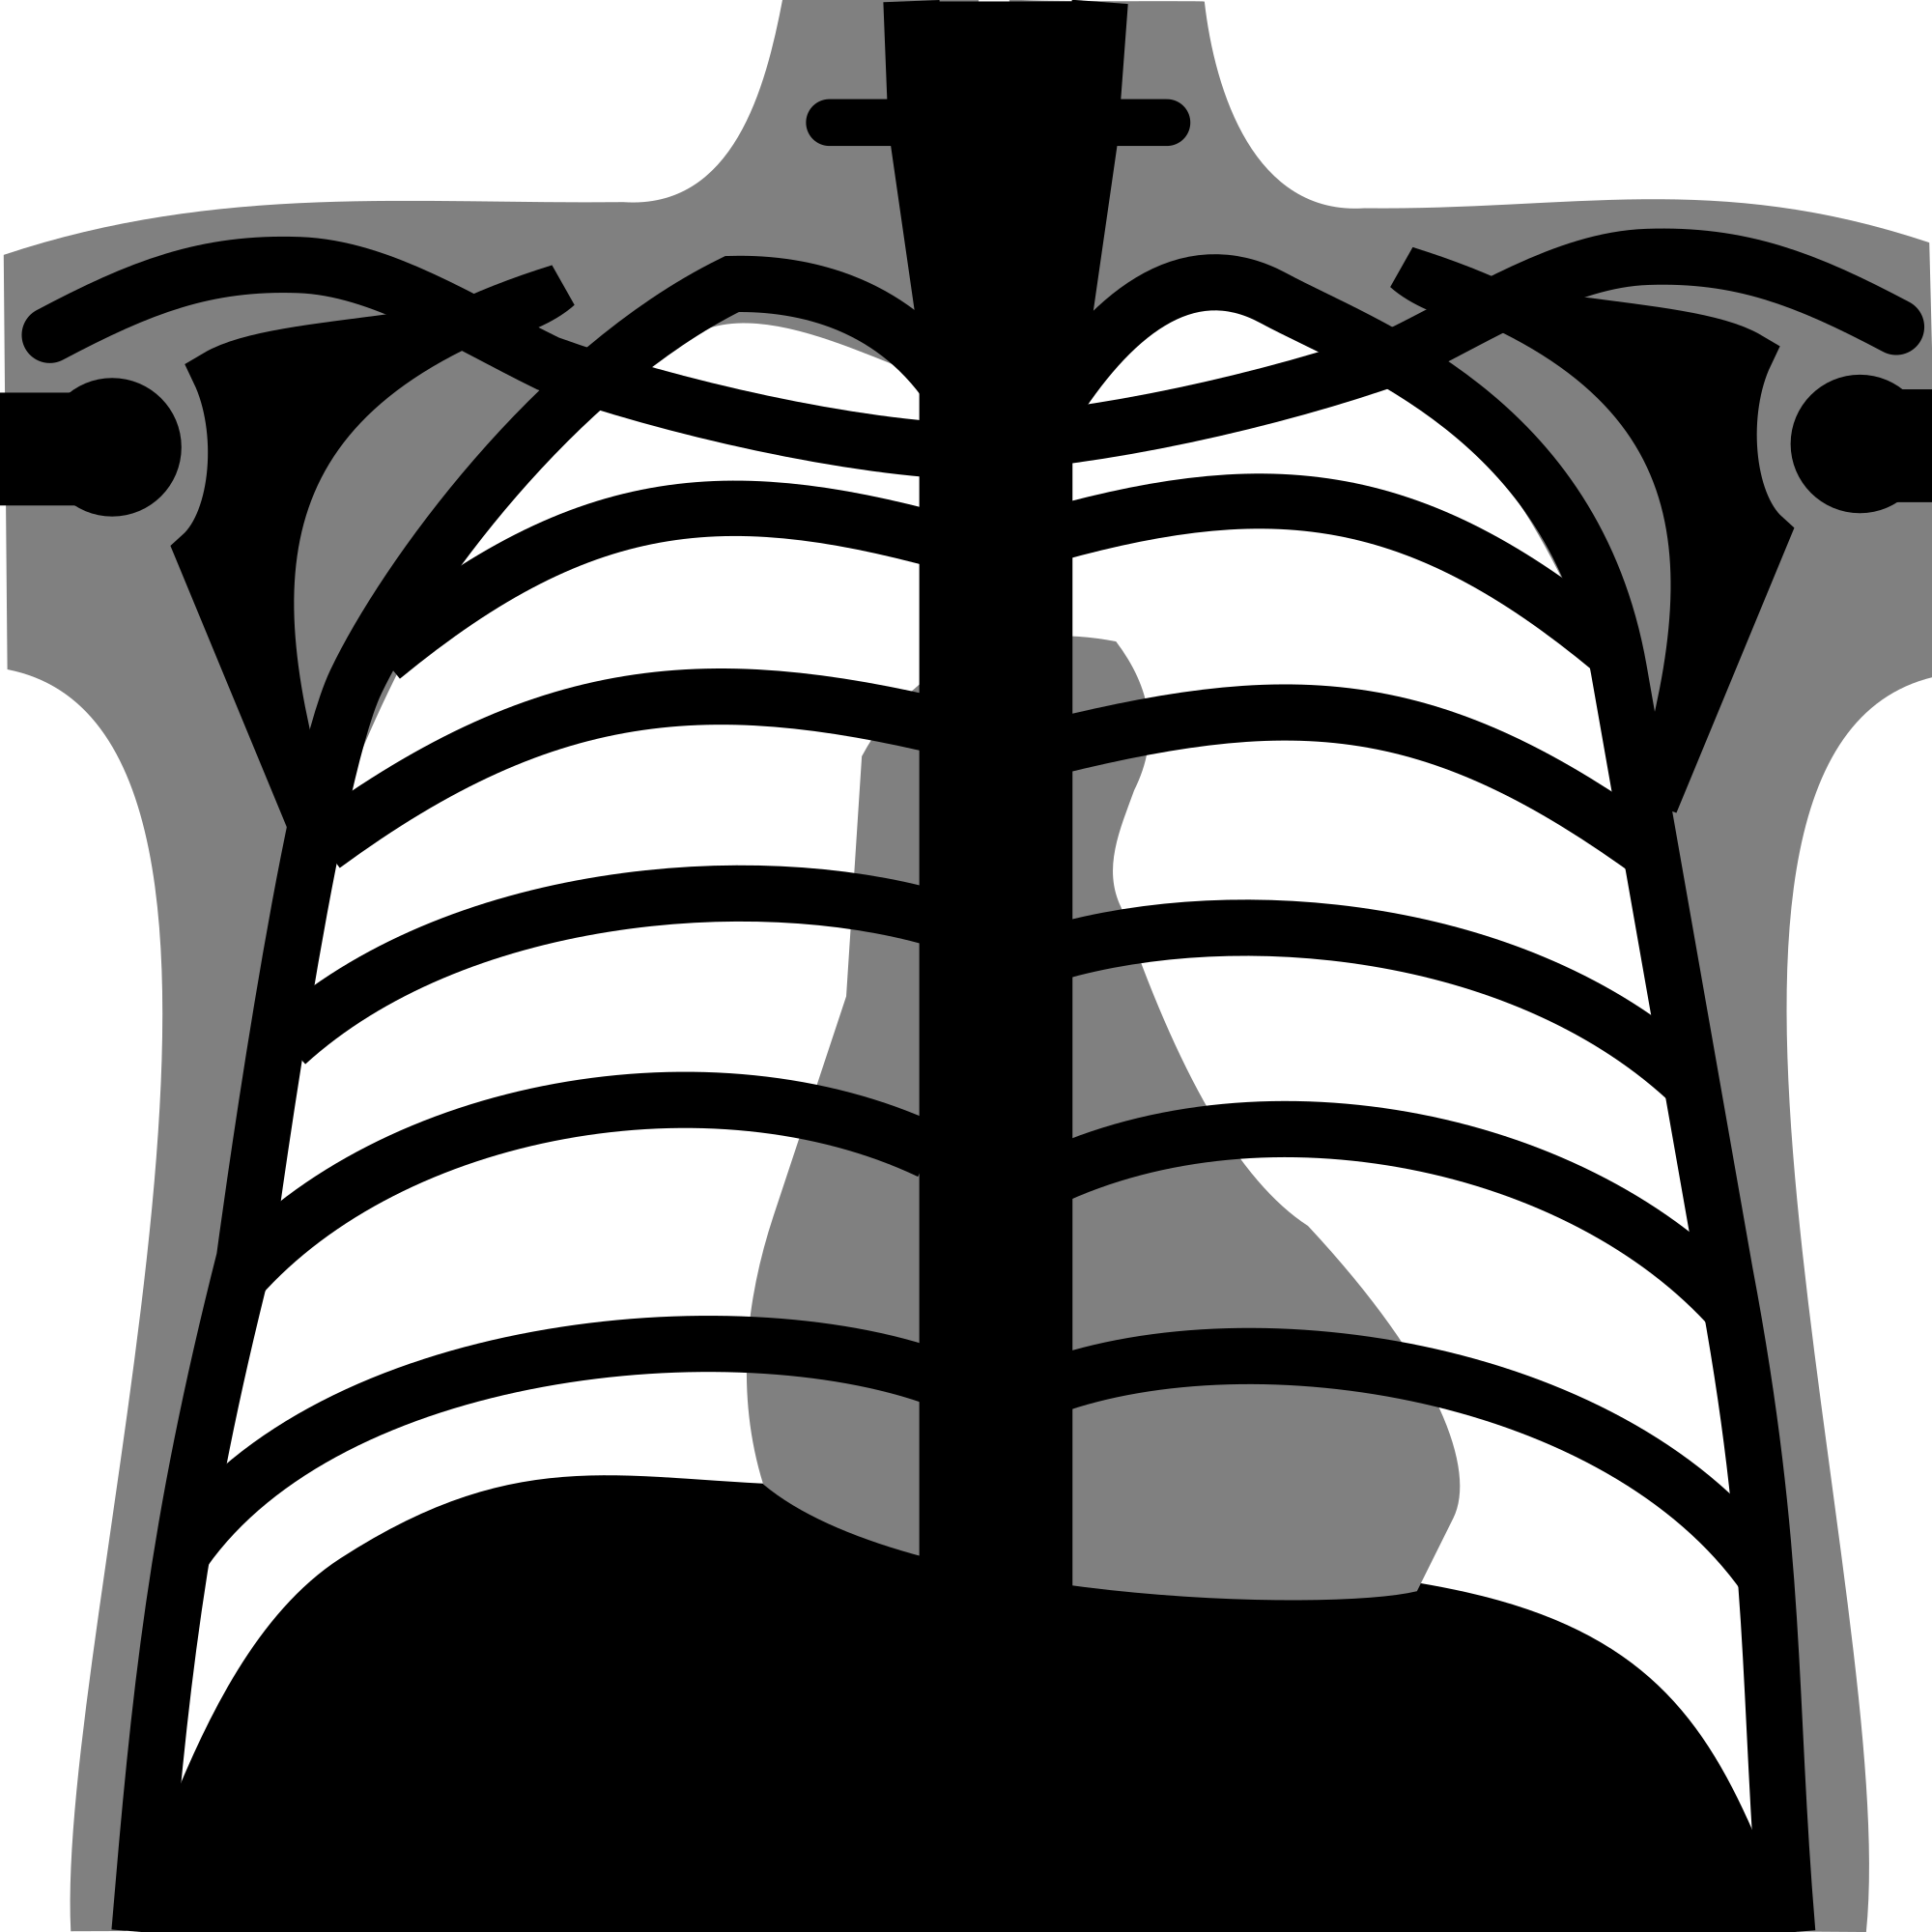 Chest xray clipart clip free stock Png Royalty Free Library X Rays Clipart - Chest X Ray Icon ... clip free stock